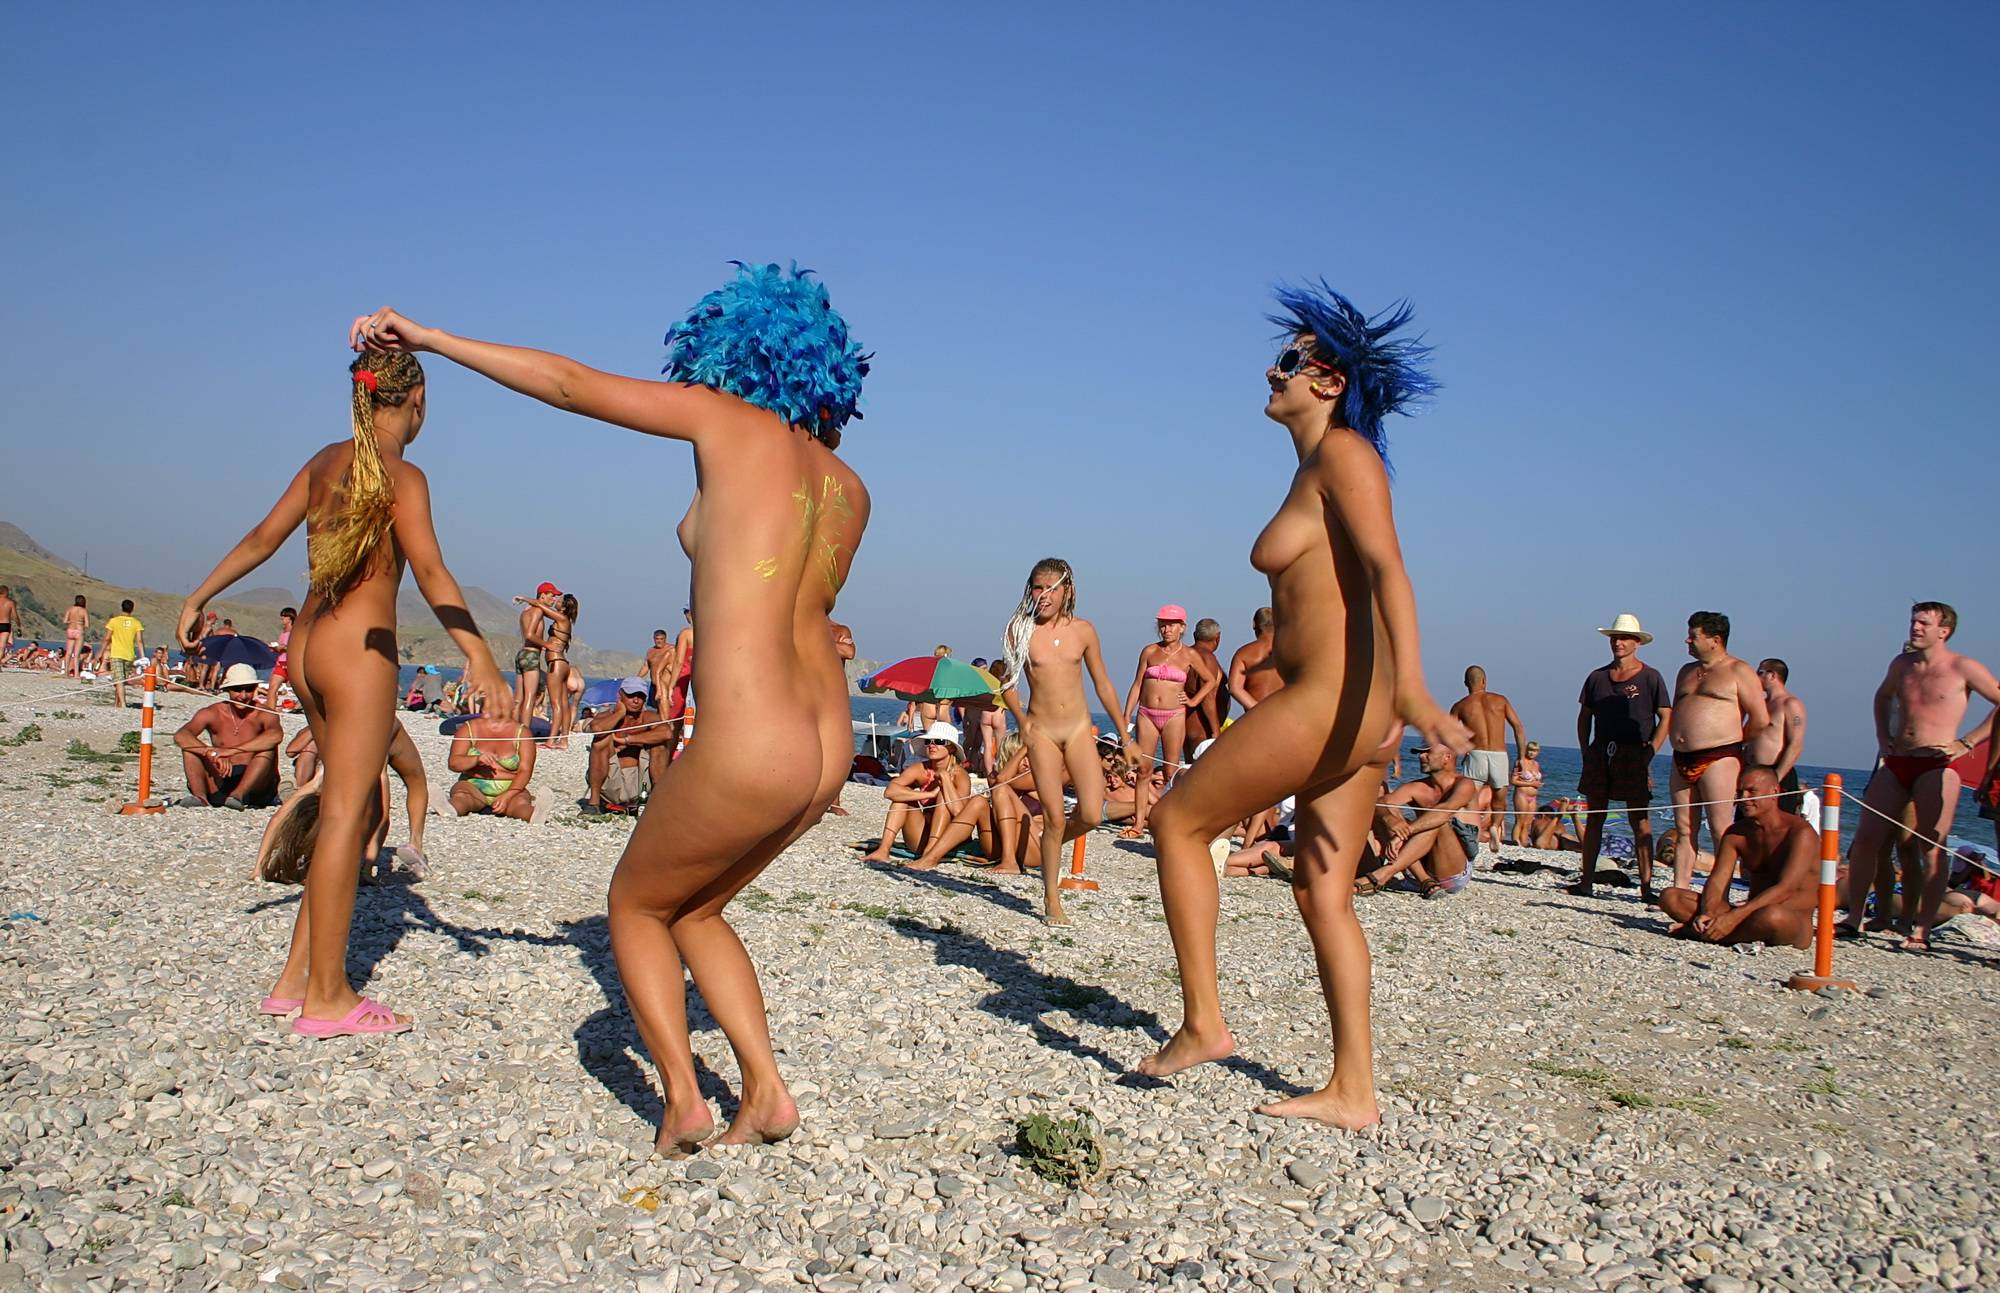 Nudist Pictures Blue Haired Sand Dance - 2